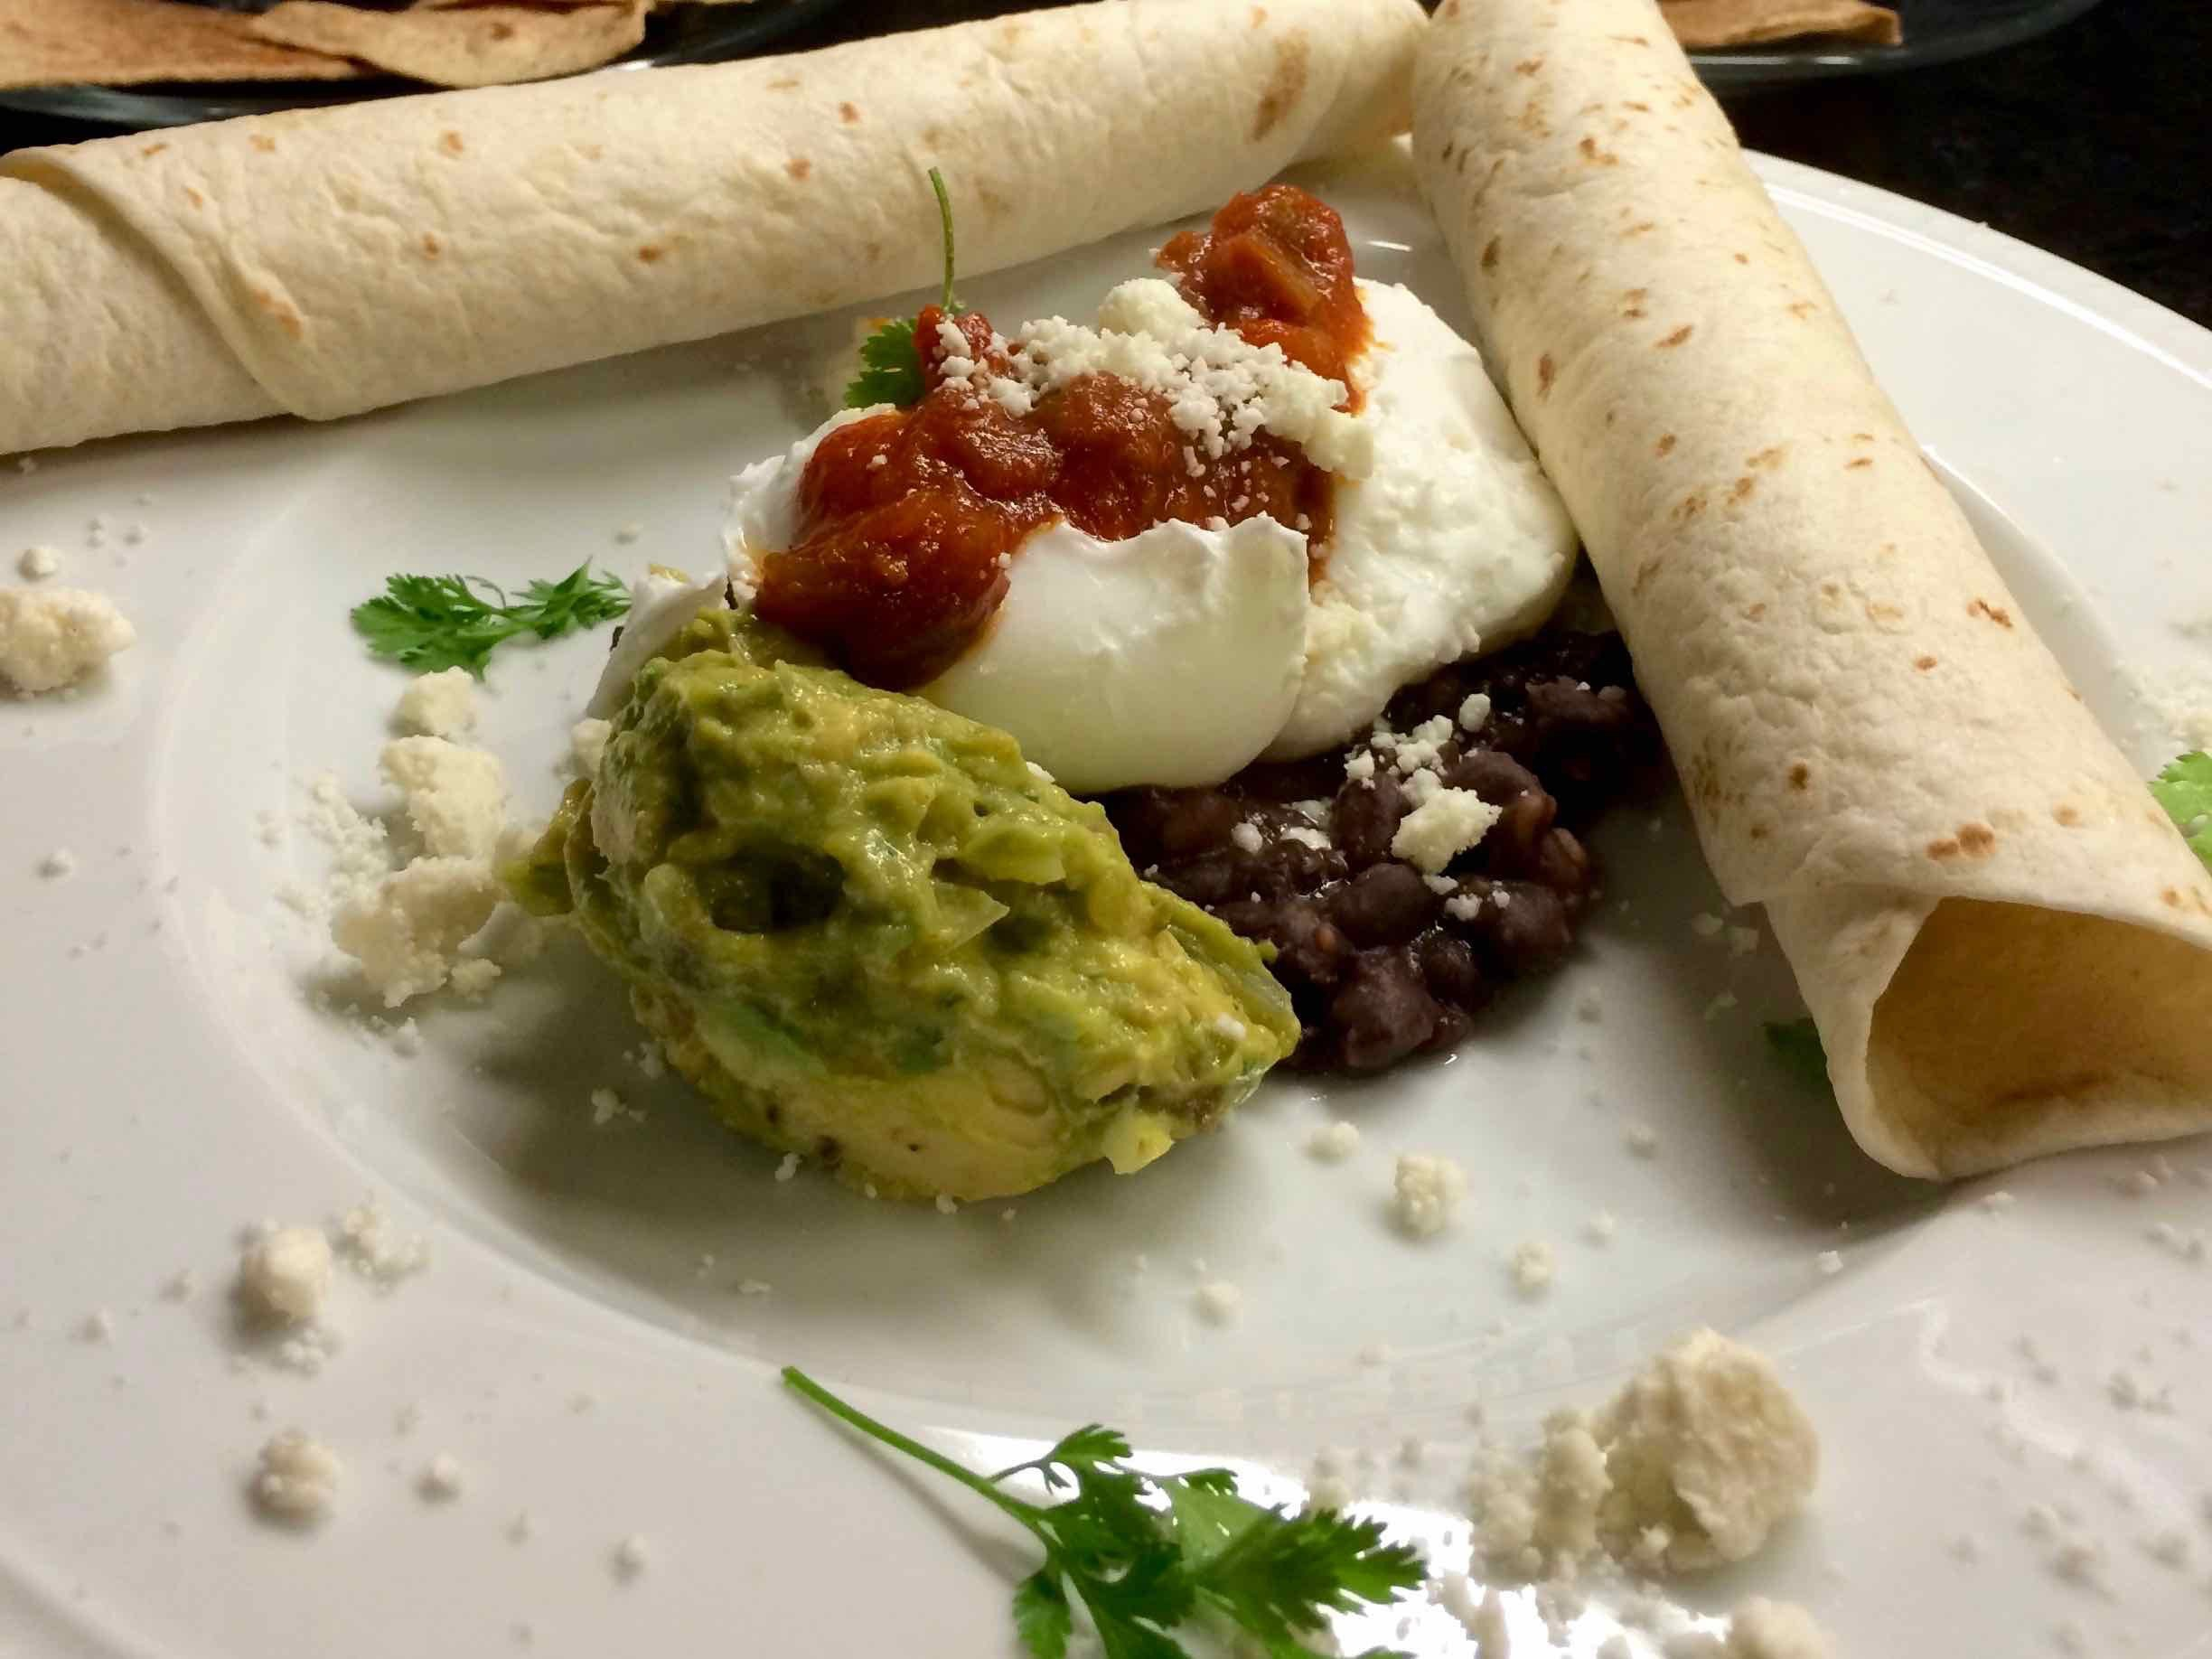 Breakfast at Coach Stop Inn – Huevos rancheros poached eggs with guacamole and salsa